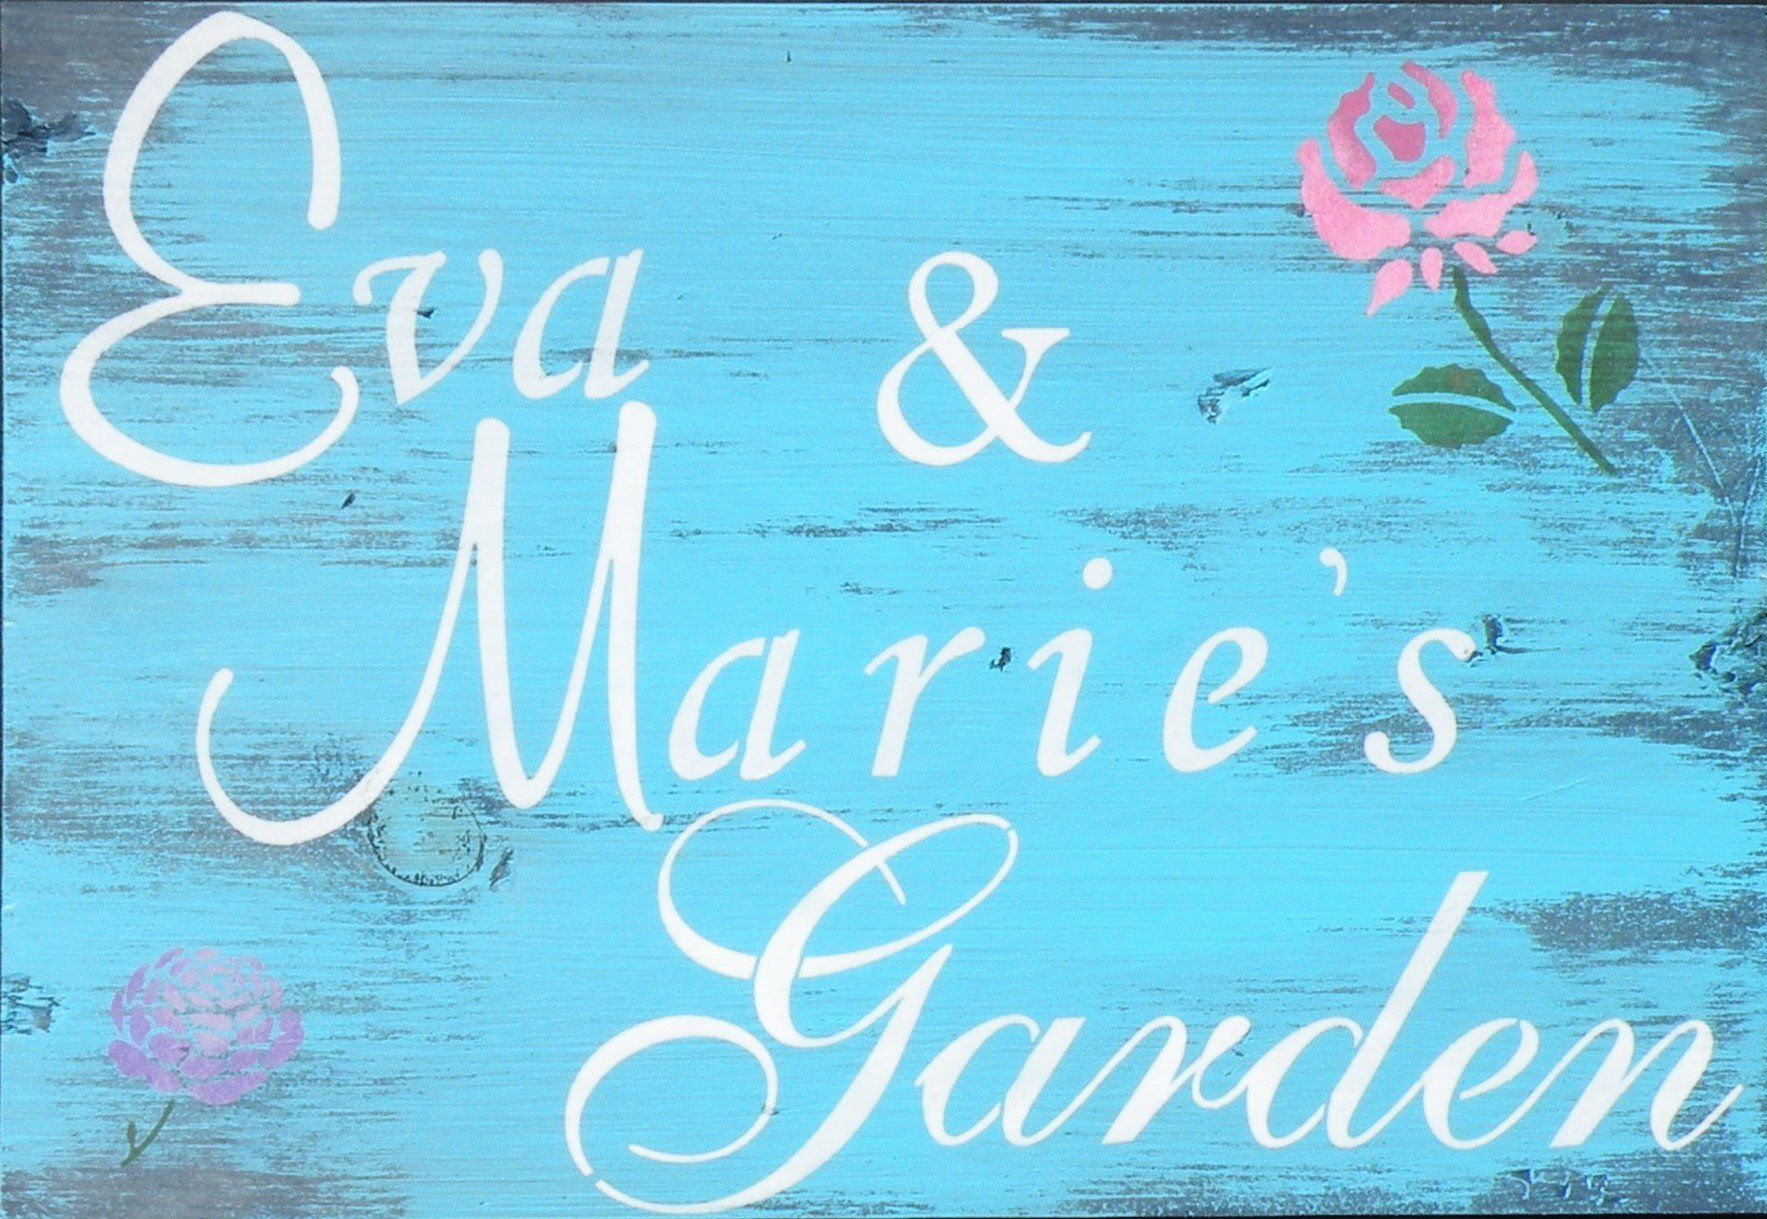 Personalized Garden Sign, Rustic Custom Name Cottage Garden Painting, Distressed Turquoise Wood Rose Garden Sign, Floral Garden Name On Sign is part of Rustic Rose garden - characters that will fit on the sign varies with the length of your personalized info and the text style used  Text lettering (font) style, size and case are subject to change from that in sample sign  Colors and finished look may vary due to the custom nature of this product, variations in wood characteristics, lighting and computer screen settings  Distress marks, wood grain and stain color are unique to each wood sign  Thanks for visiting Ethel's Barn!